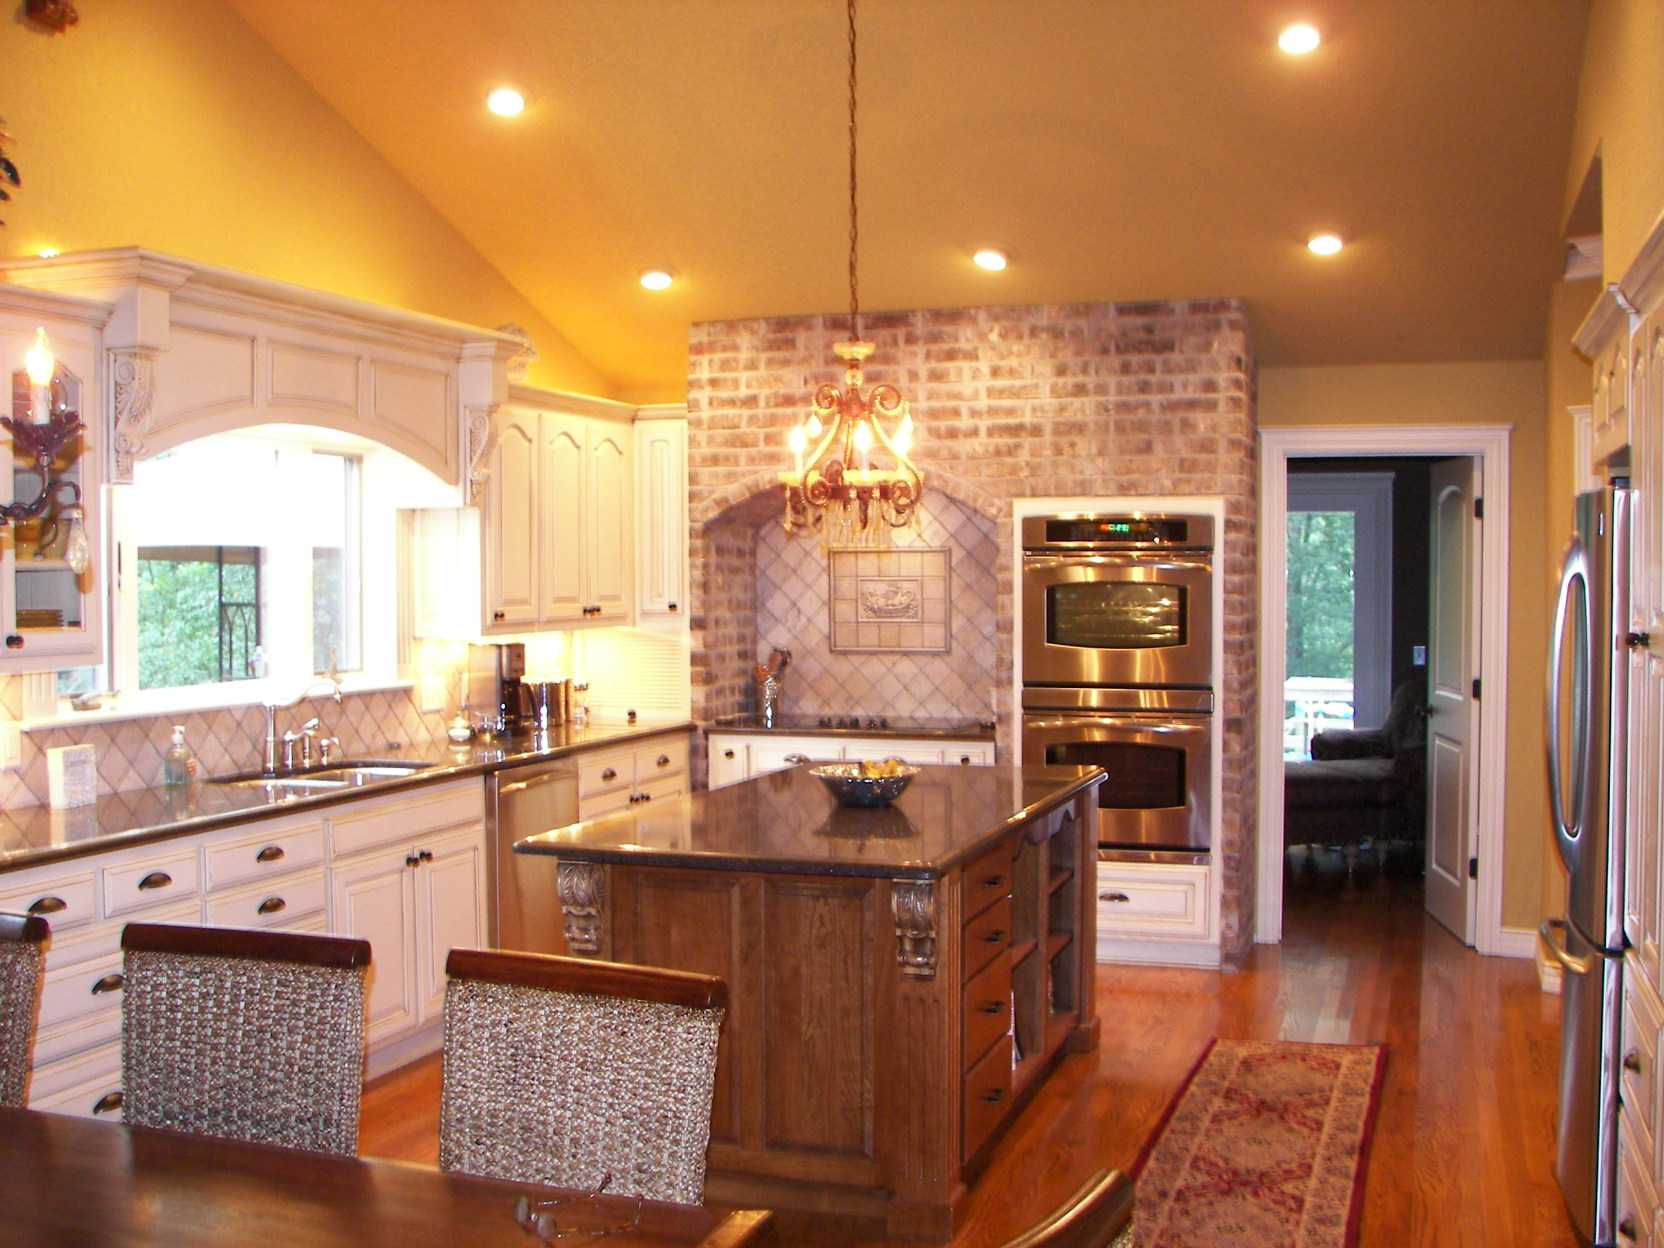 janacek-remodeling-kitchen-remodel-hero